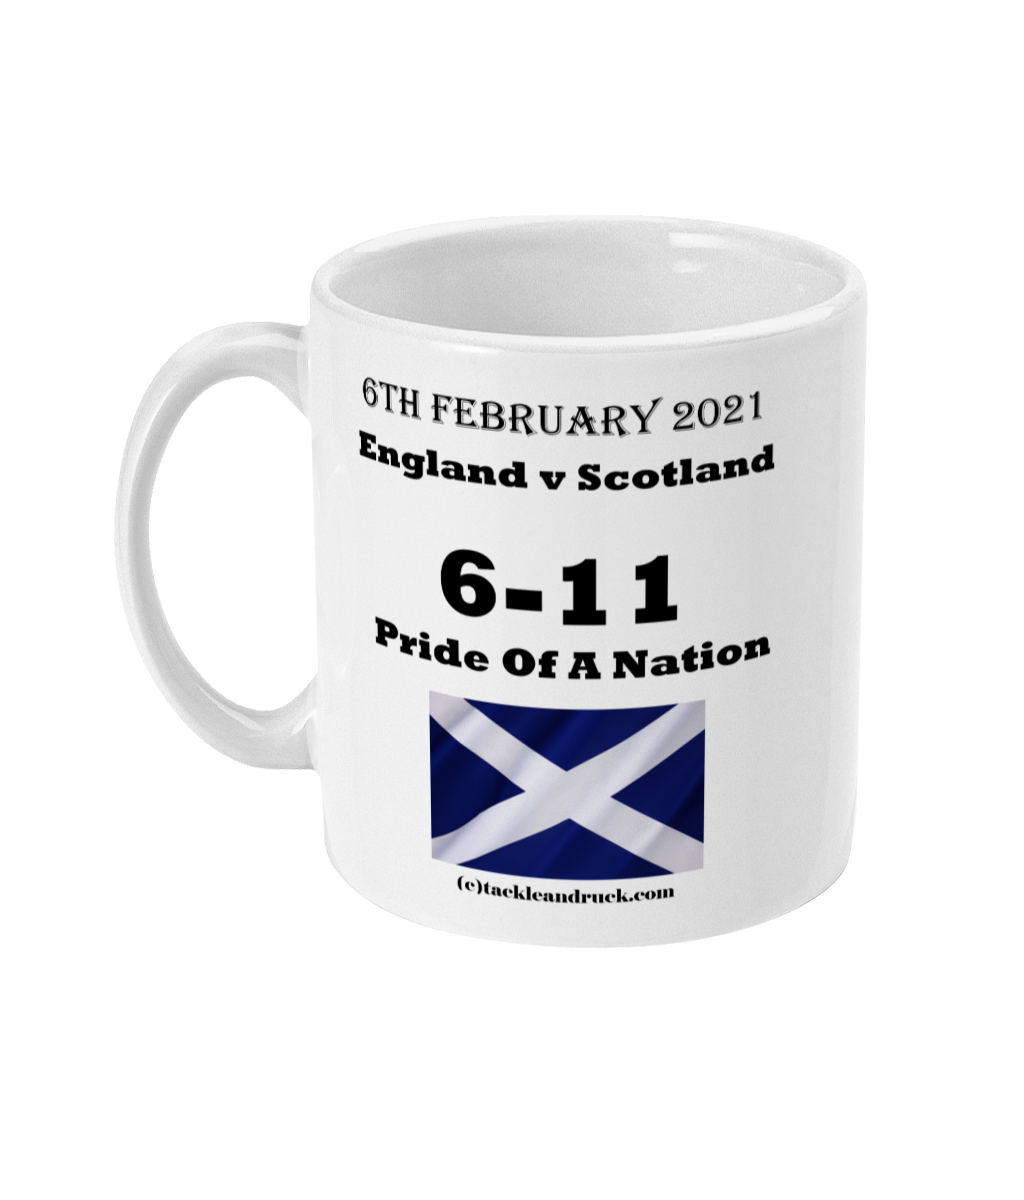 Tackle and Ruck - Calcutta Cup 2021 Win - Pride Of A Nation15oz souvenir mugs gifts Scottish Rugby mugs